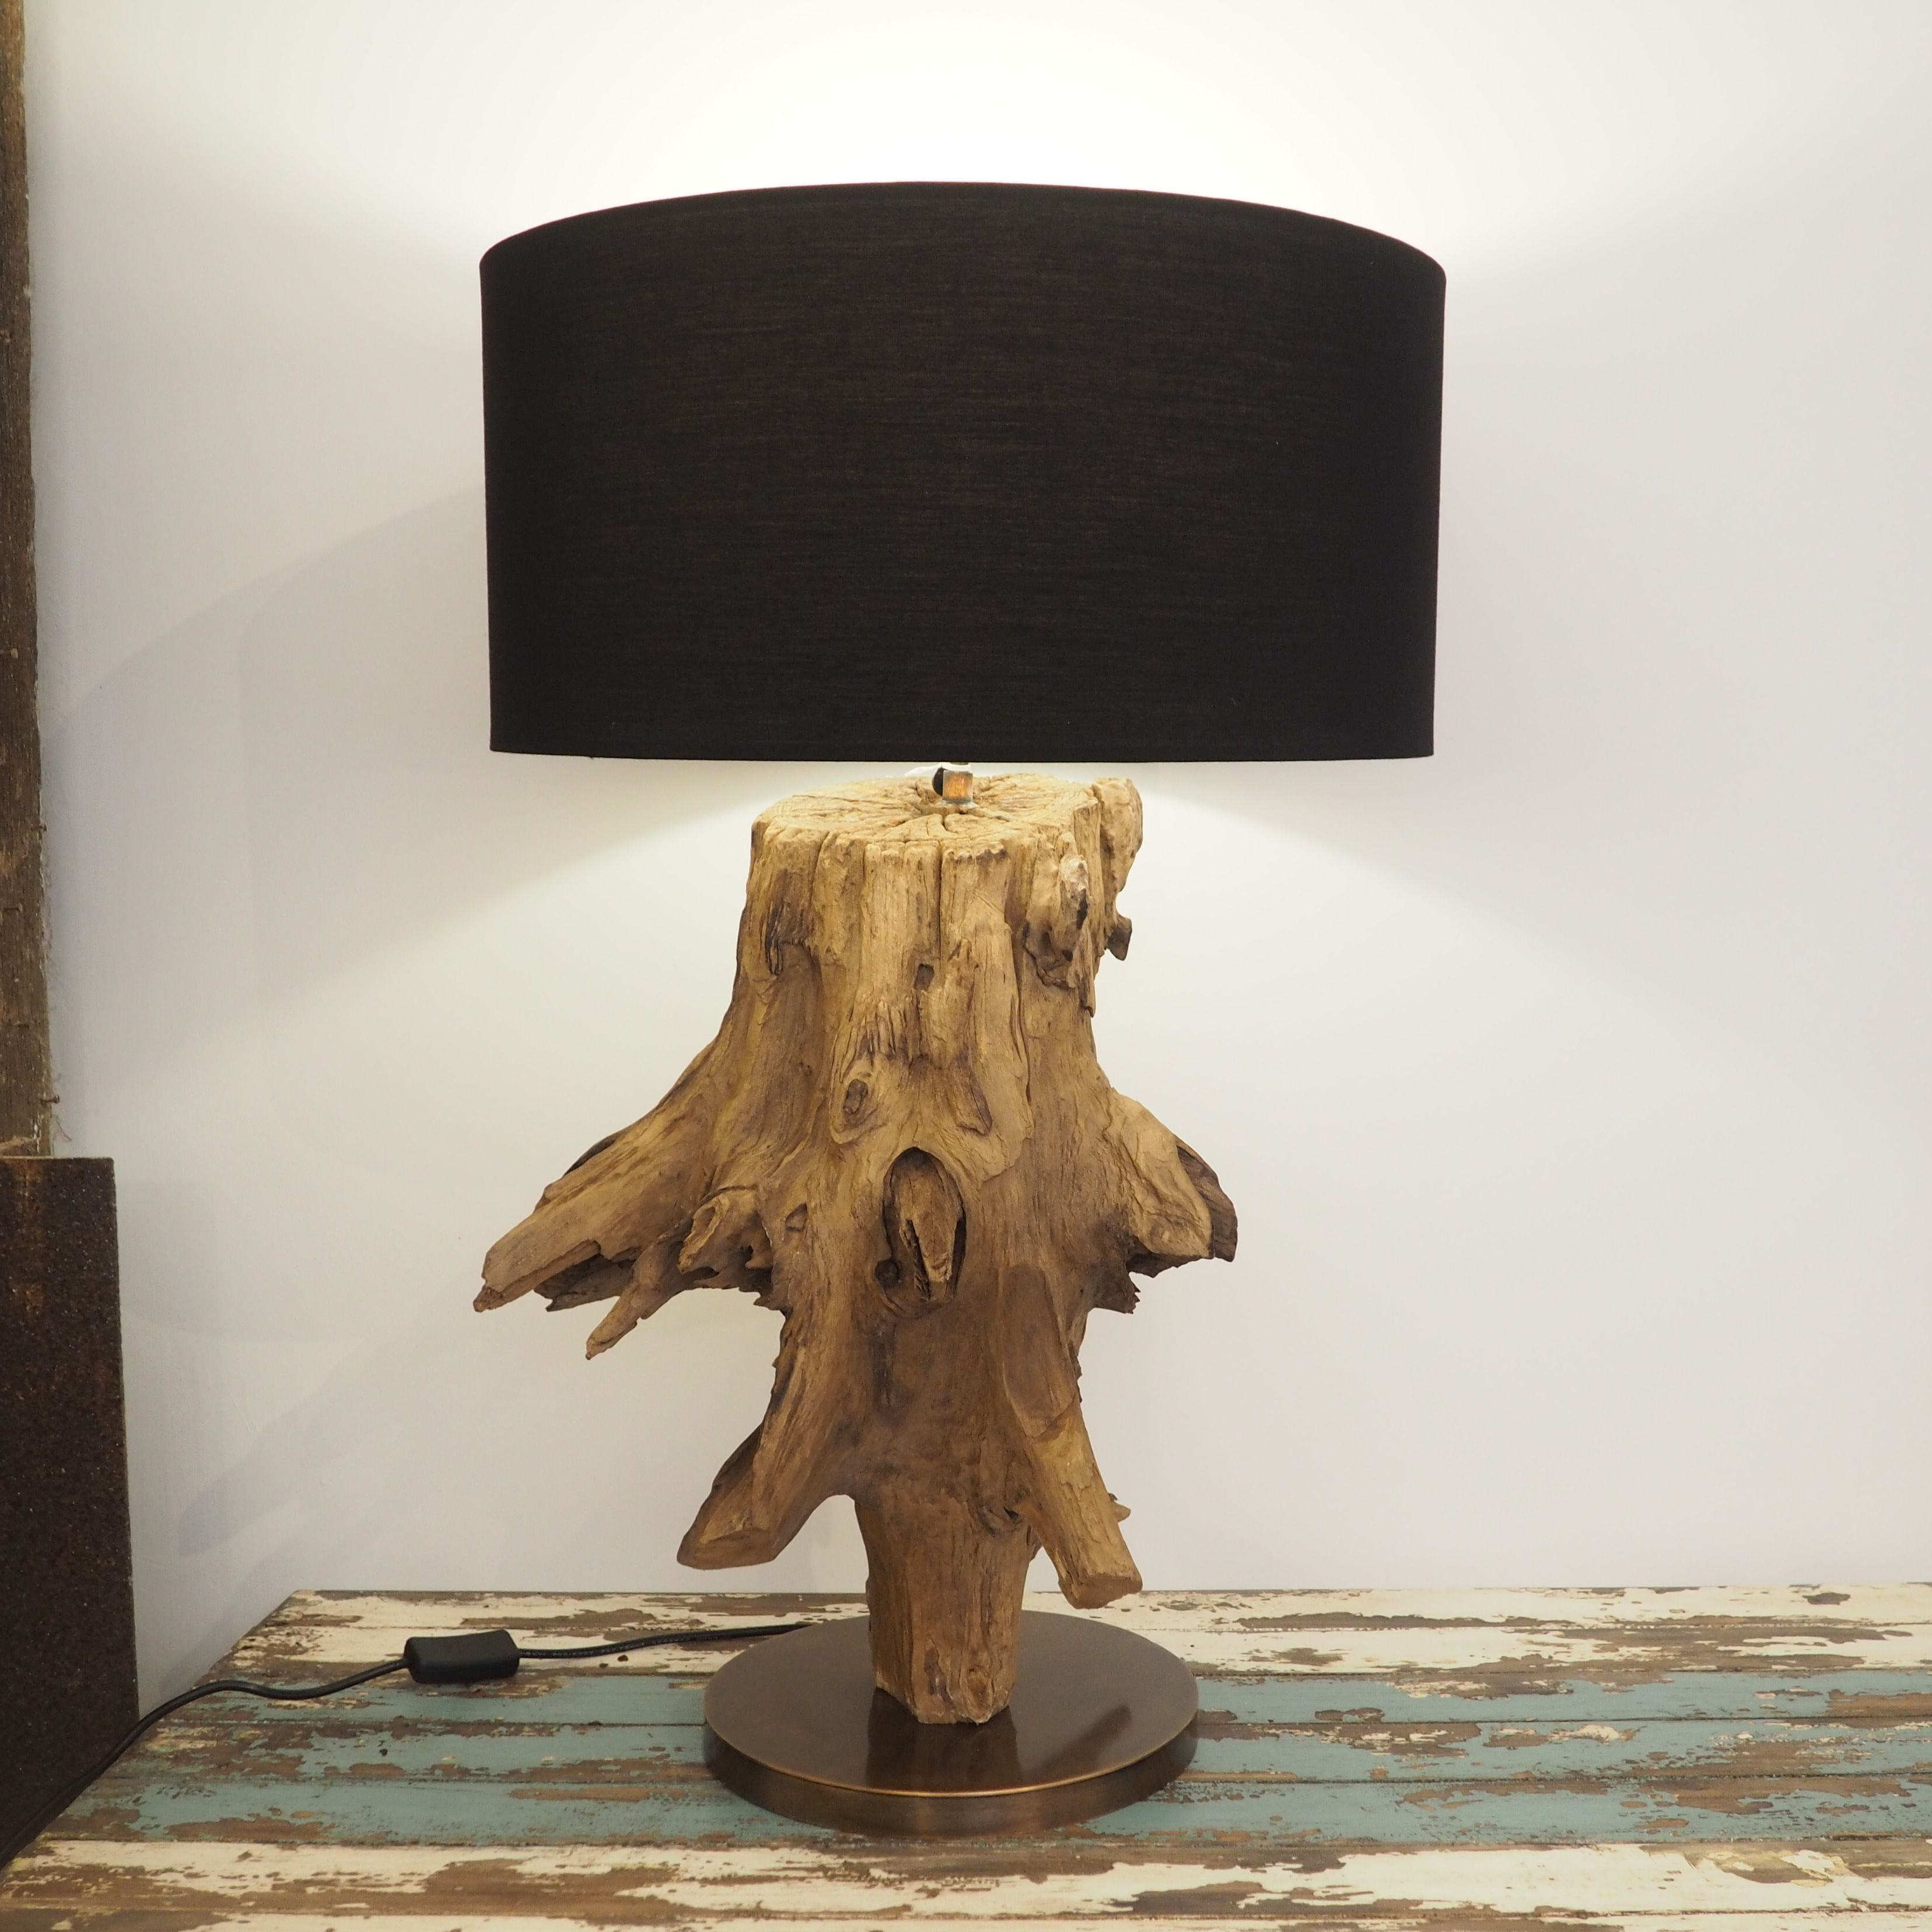 pear cactus shade hickory with gallery rusted small of rustic lamp large foliage table prickly